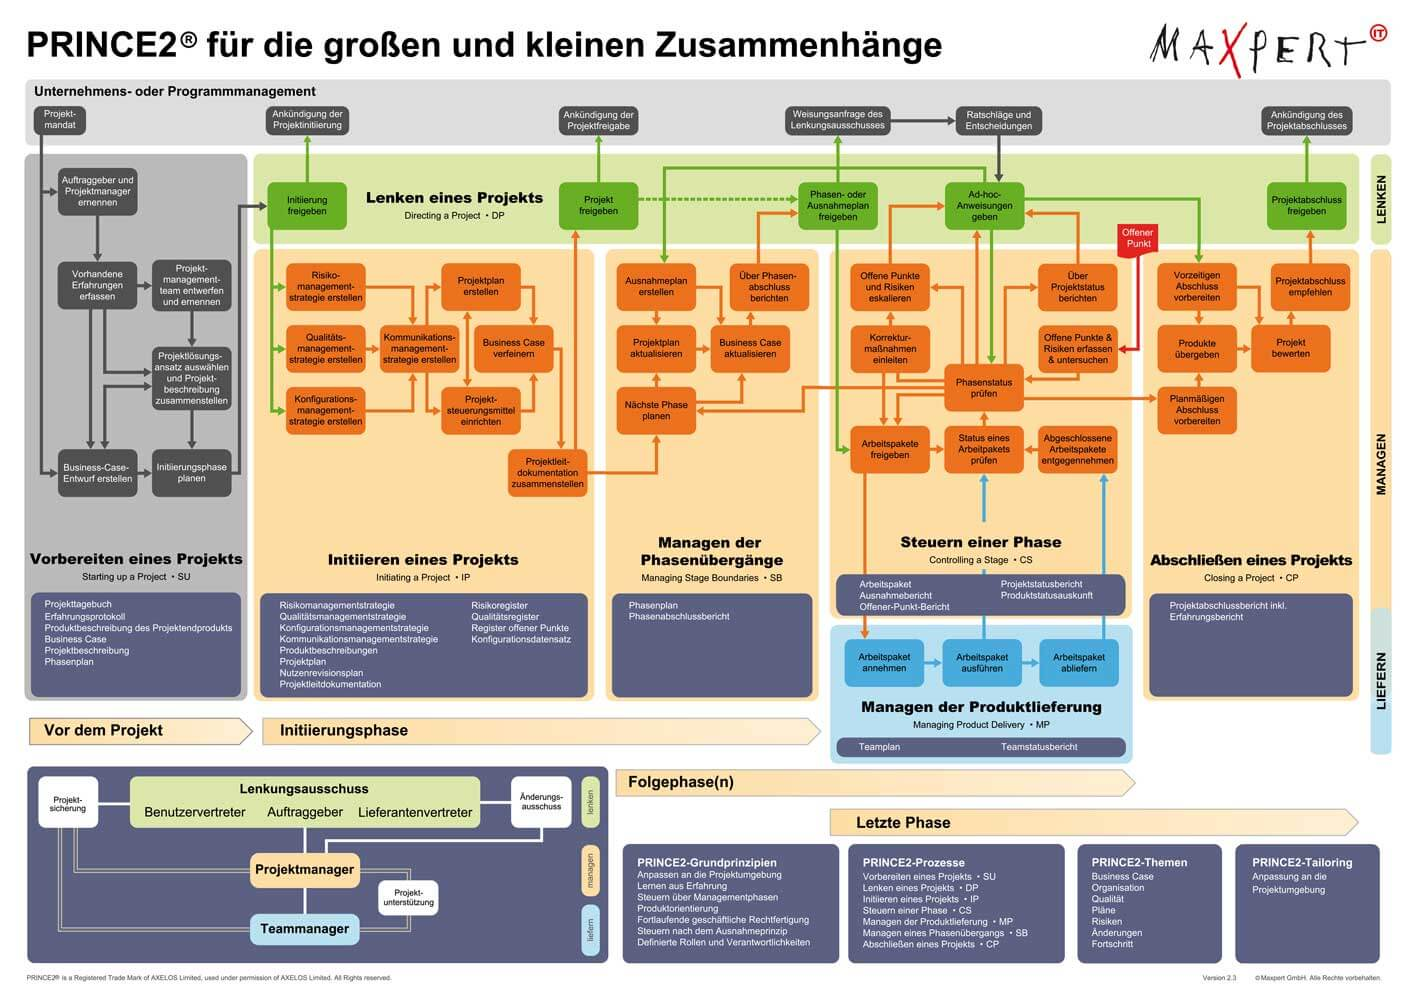 PRINCE2 Prozessmodell